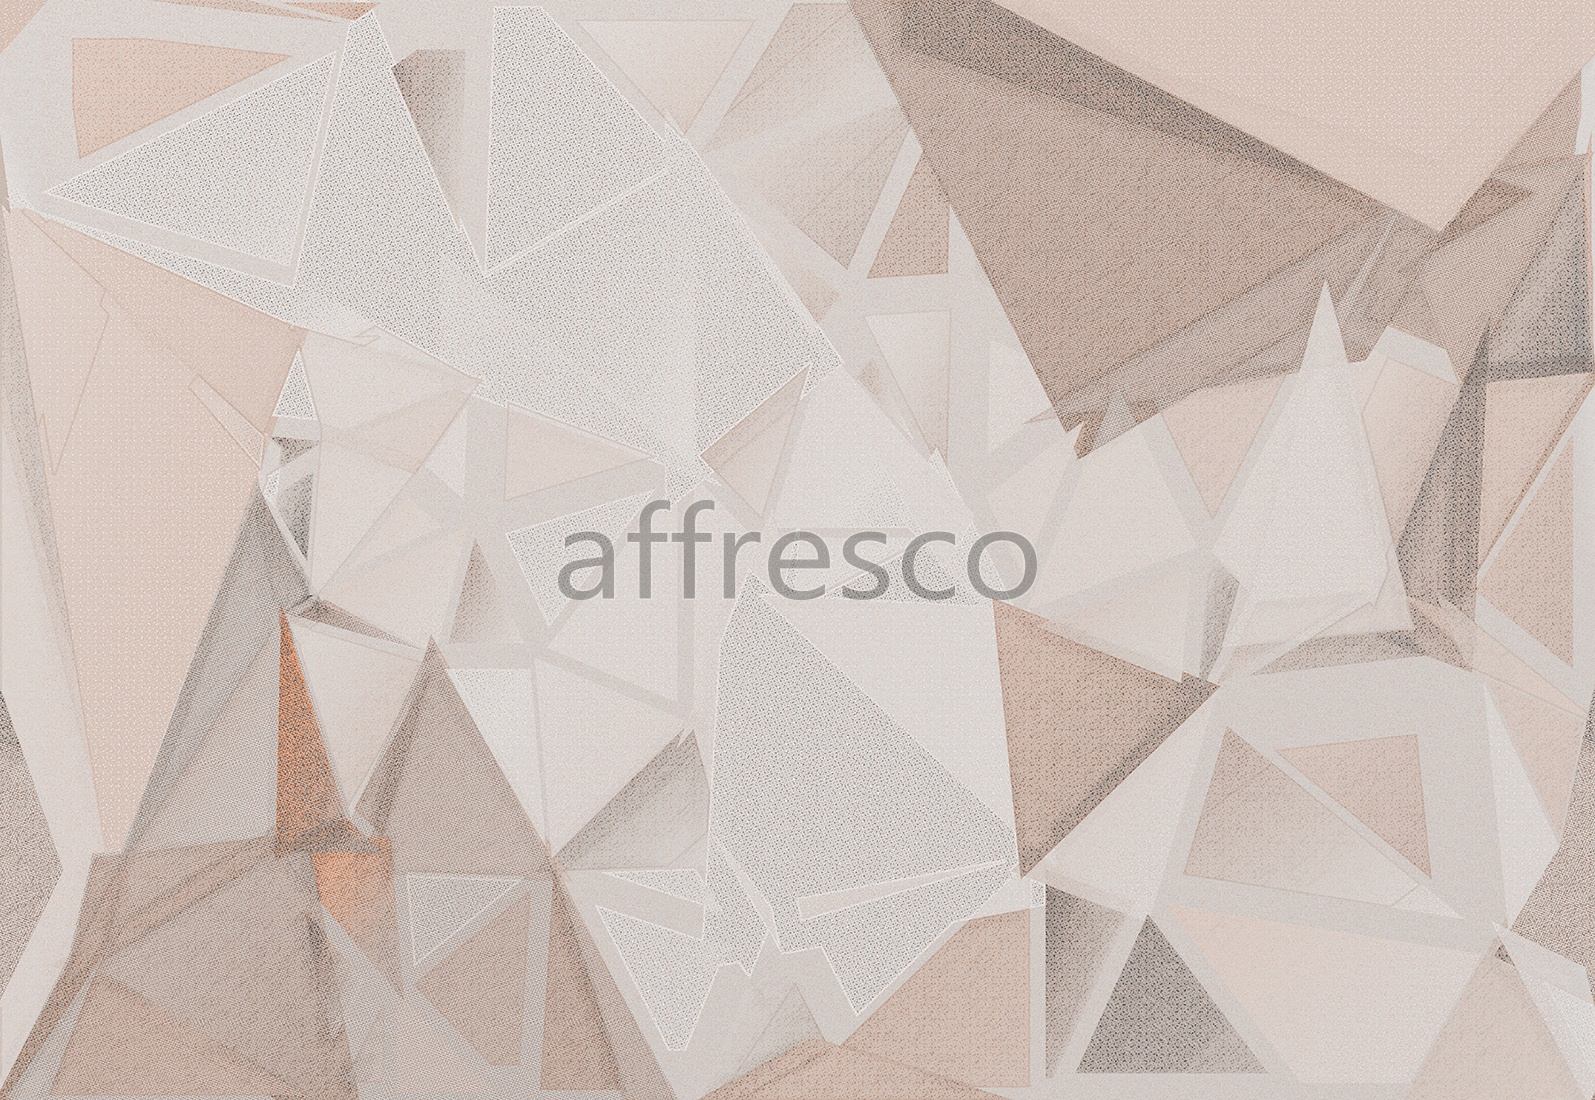 ID136327 | Geometry |  | Affresco Factory